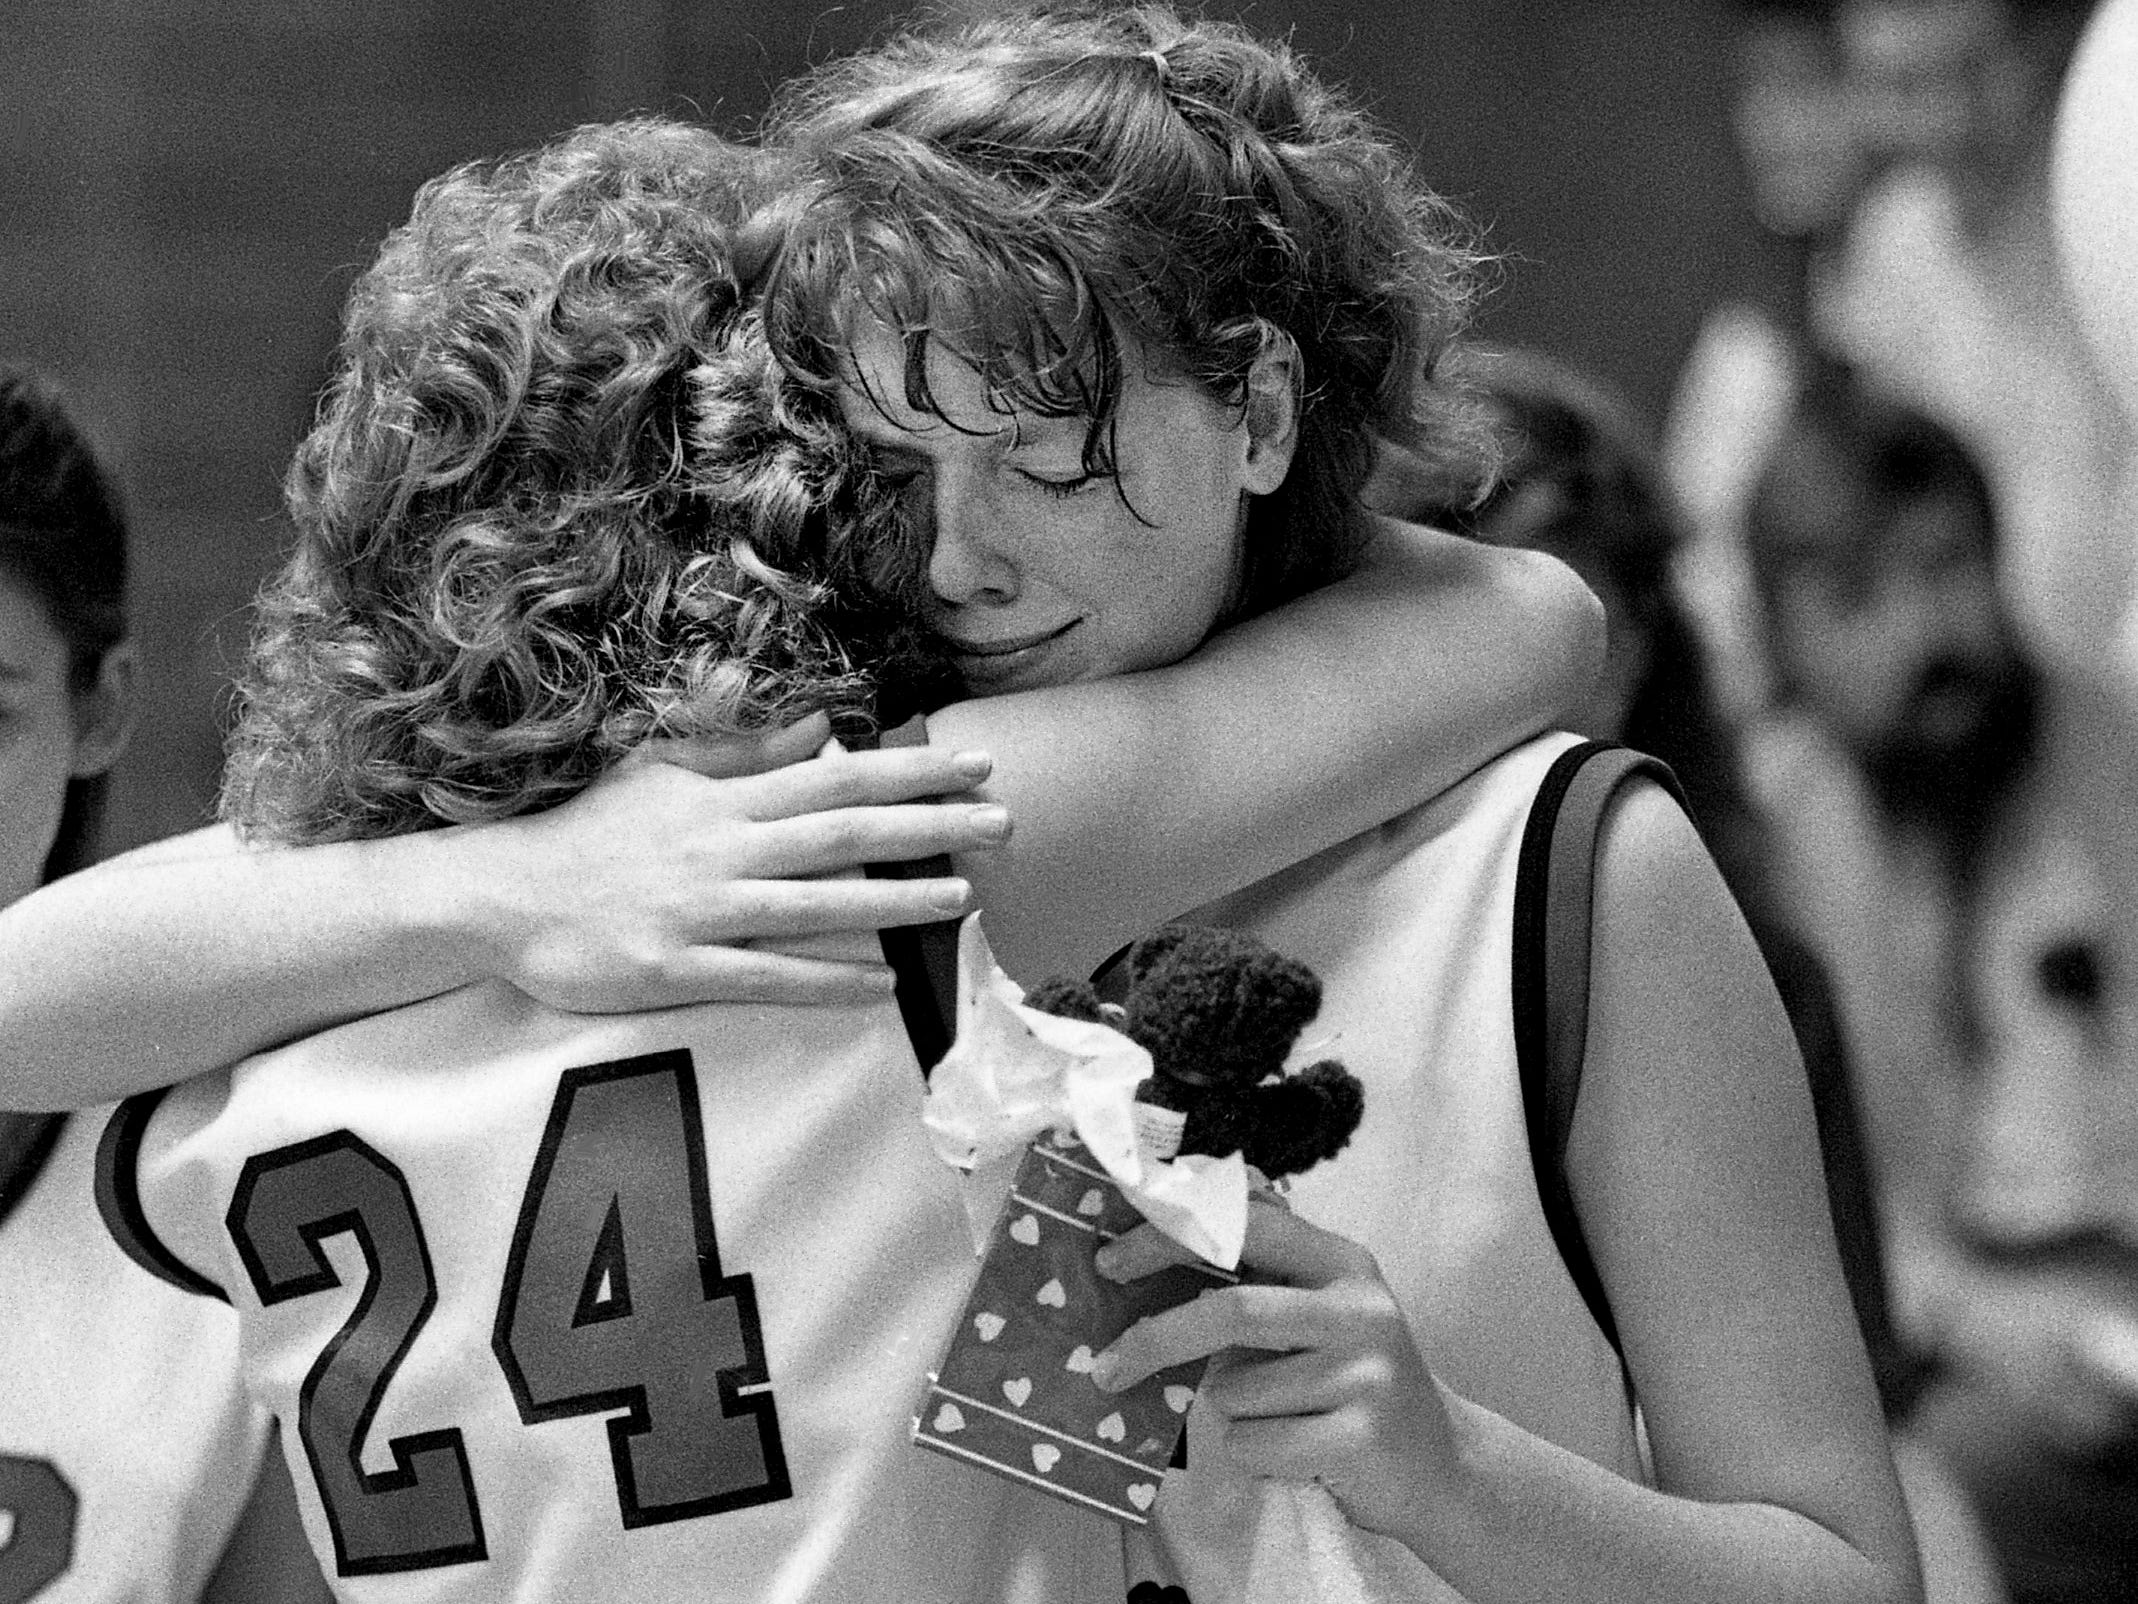 St. Bernard Academy senior Carol Villa (24) and junior Melinda Laake hug after their final game Feb. 14, 1989, as the school will close its doors forever this spring. St. Bernard lost to District 7-A foe Davidson Academy 42-36.